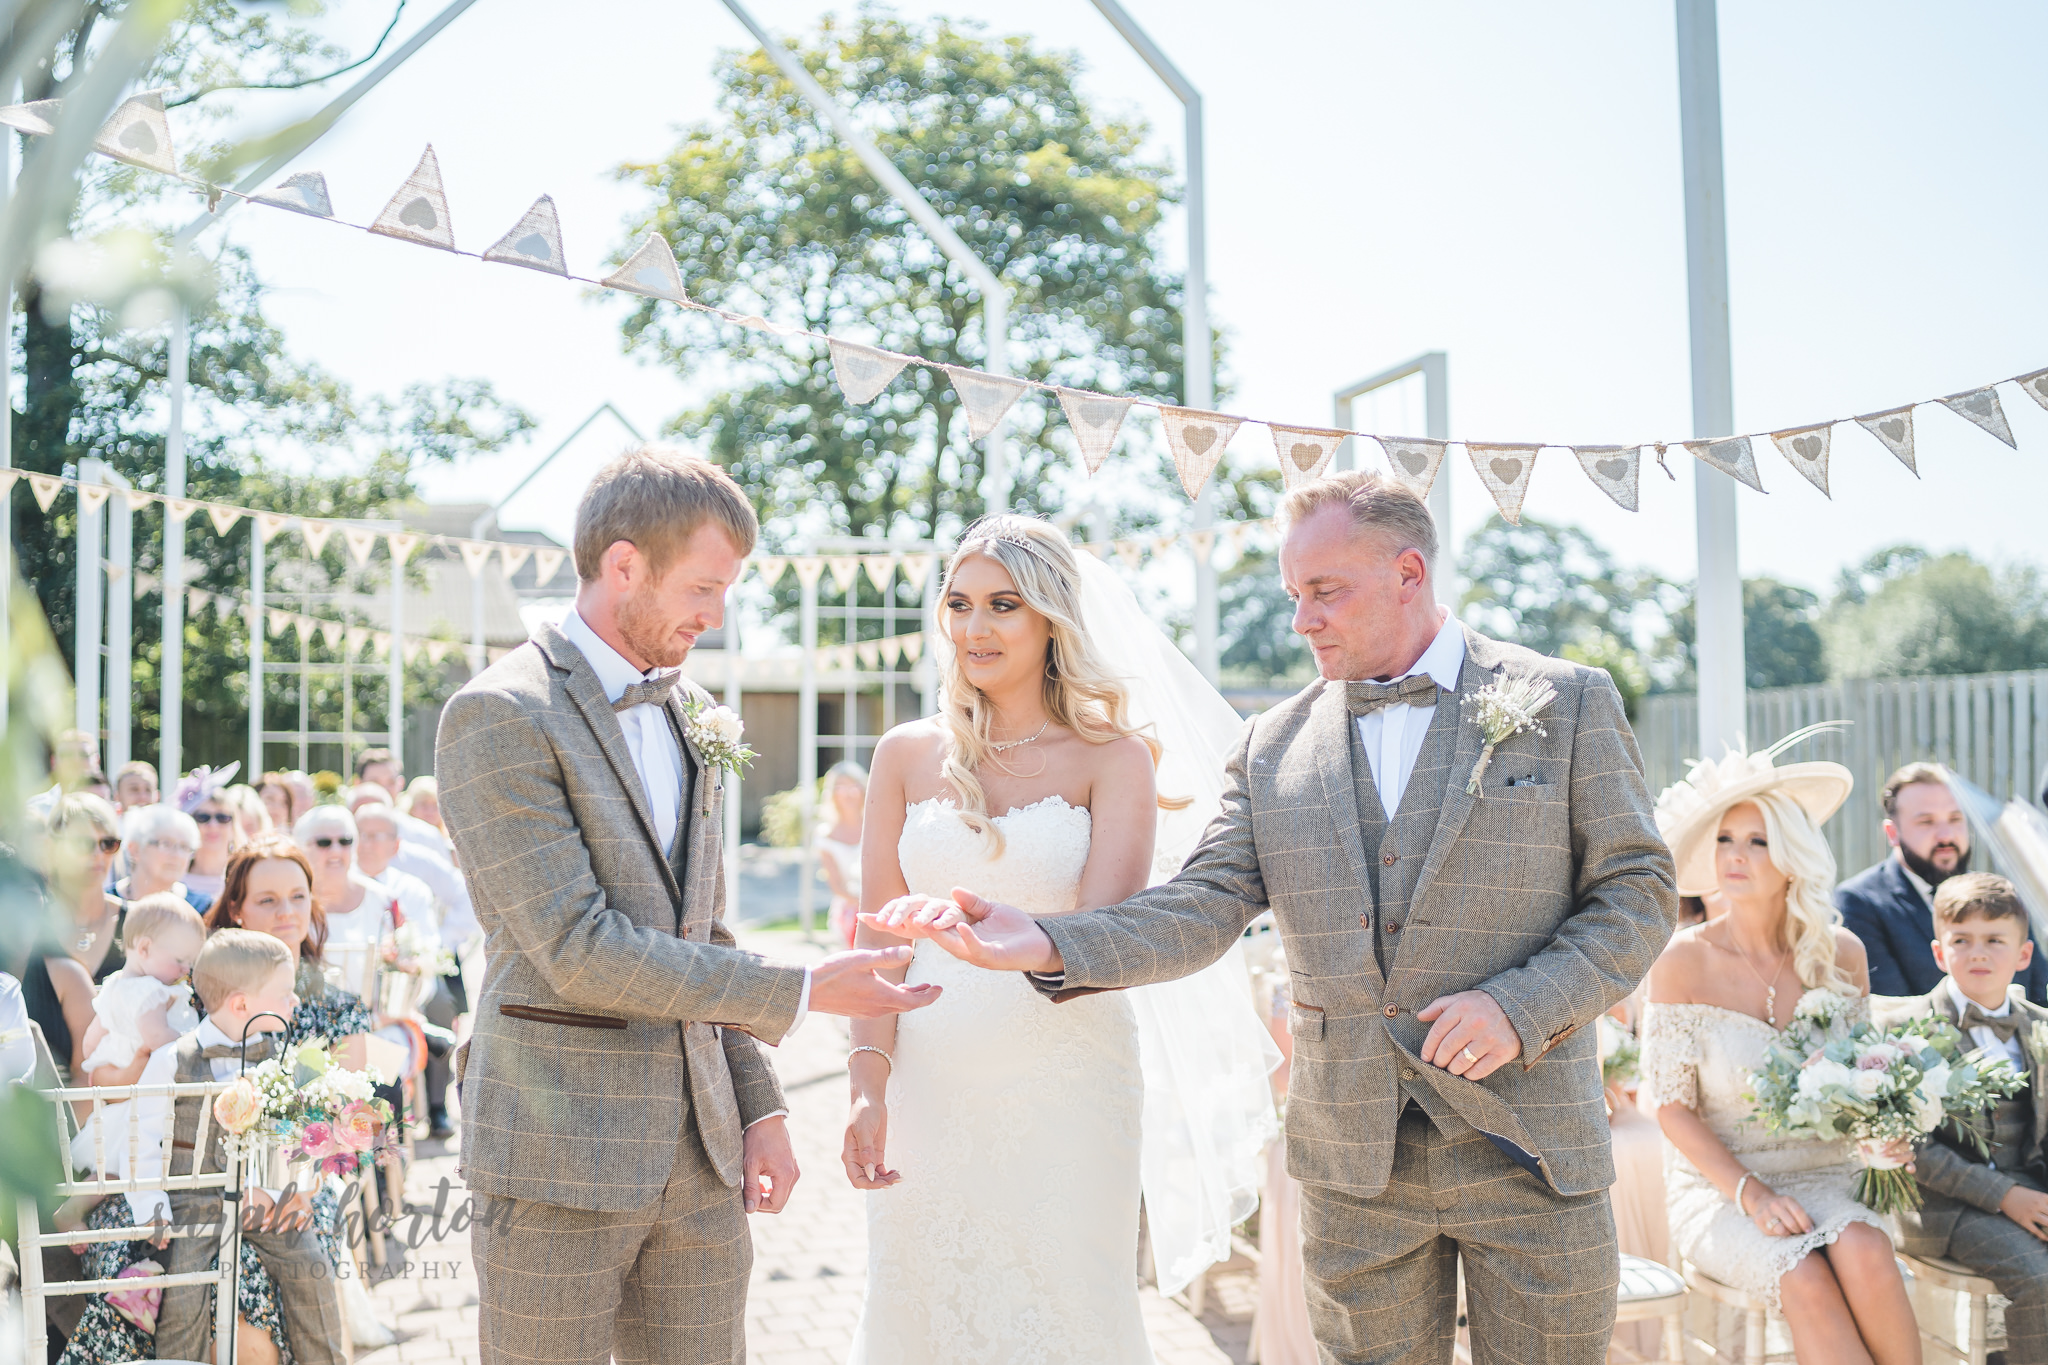 Alcumlow Barn Outdoor Wedding